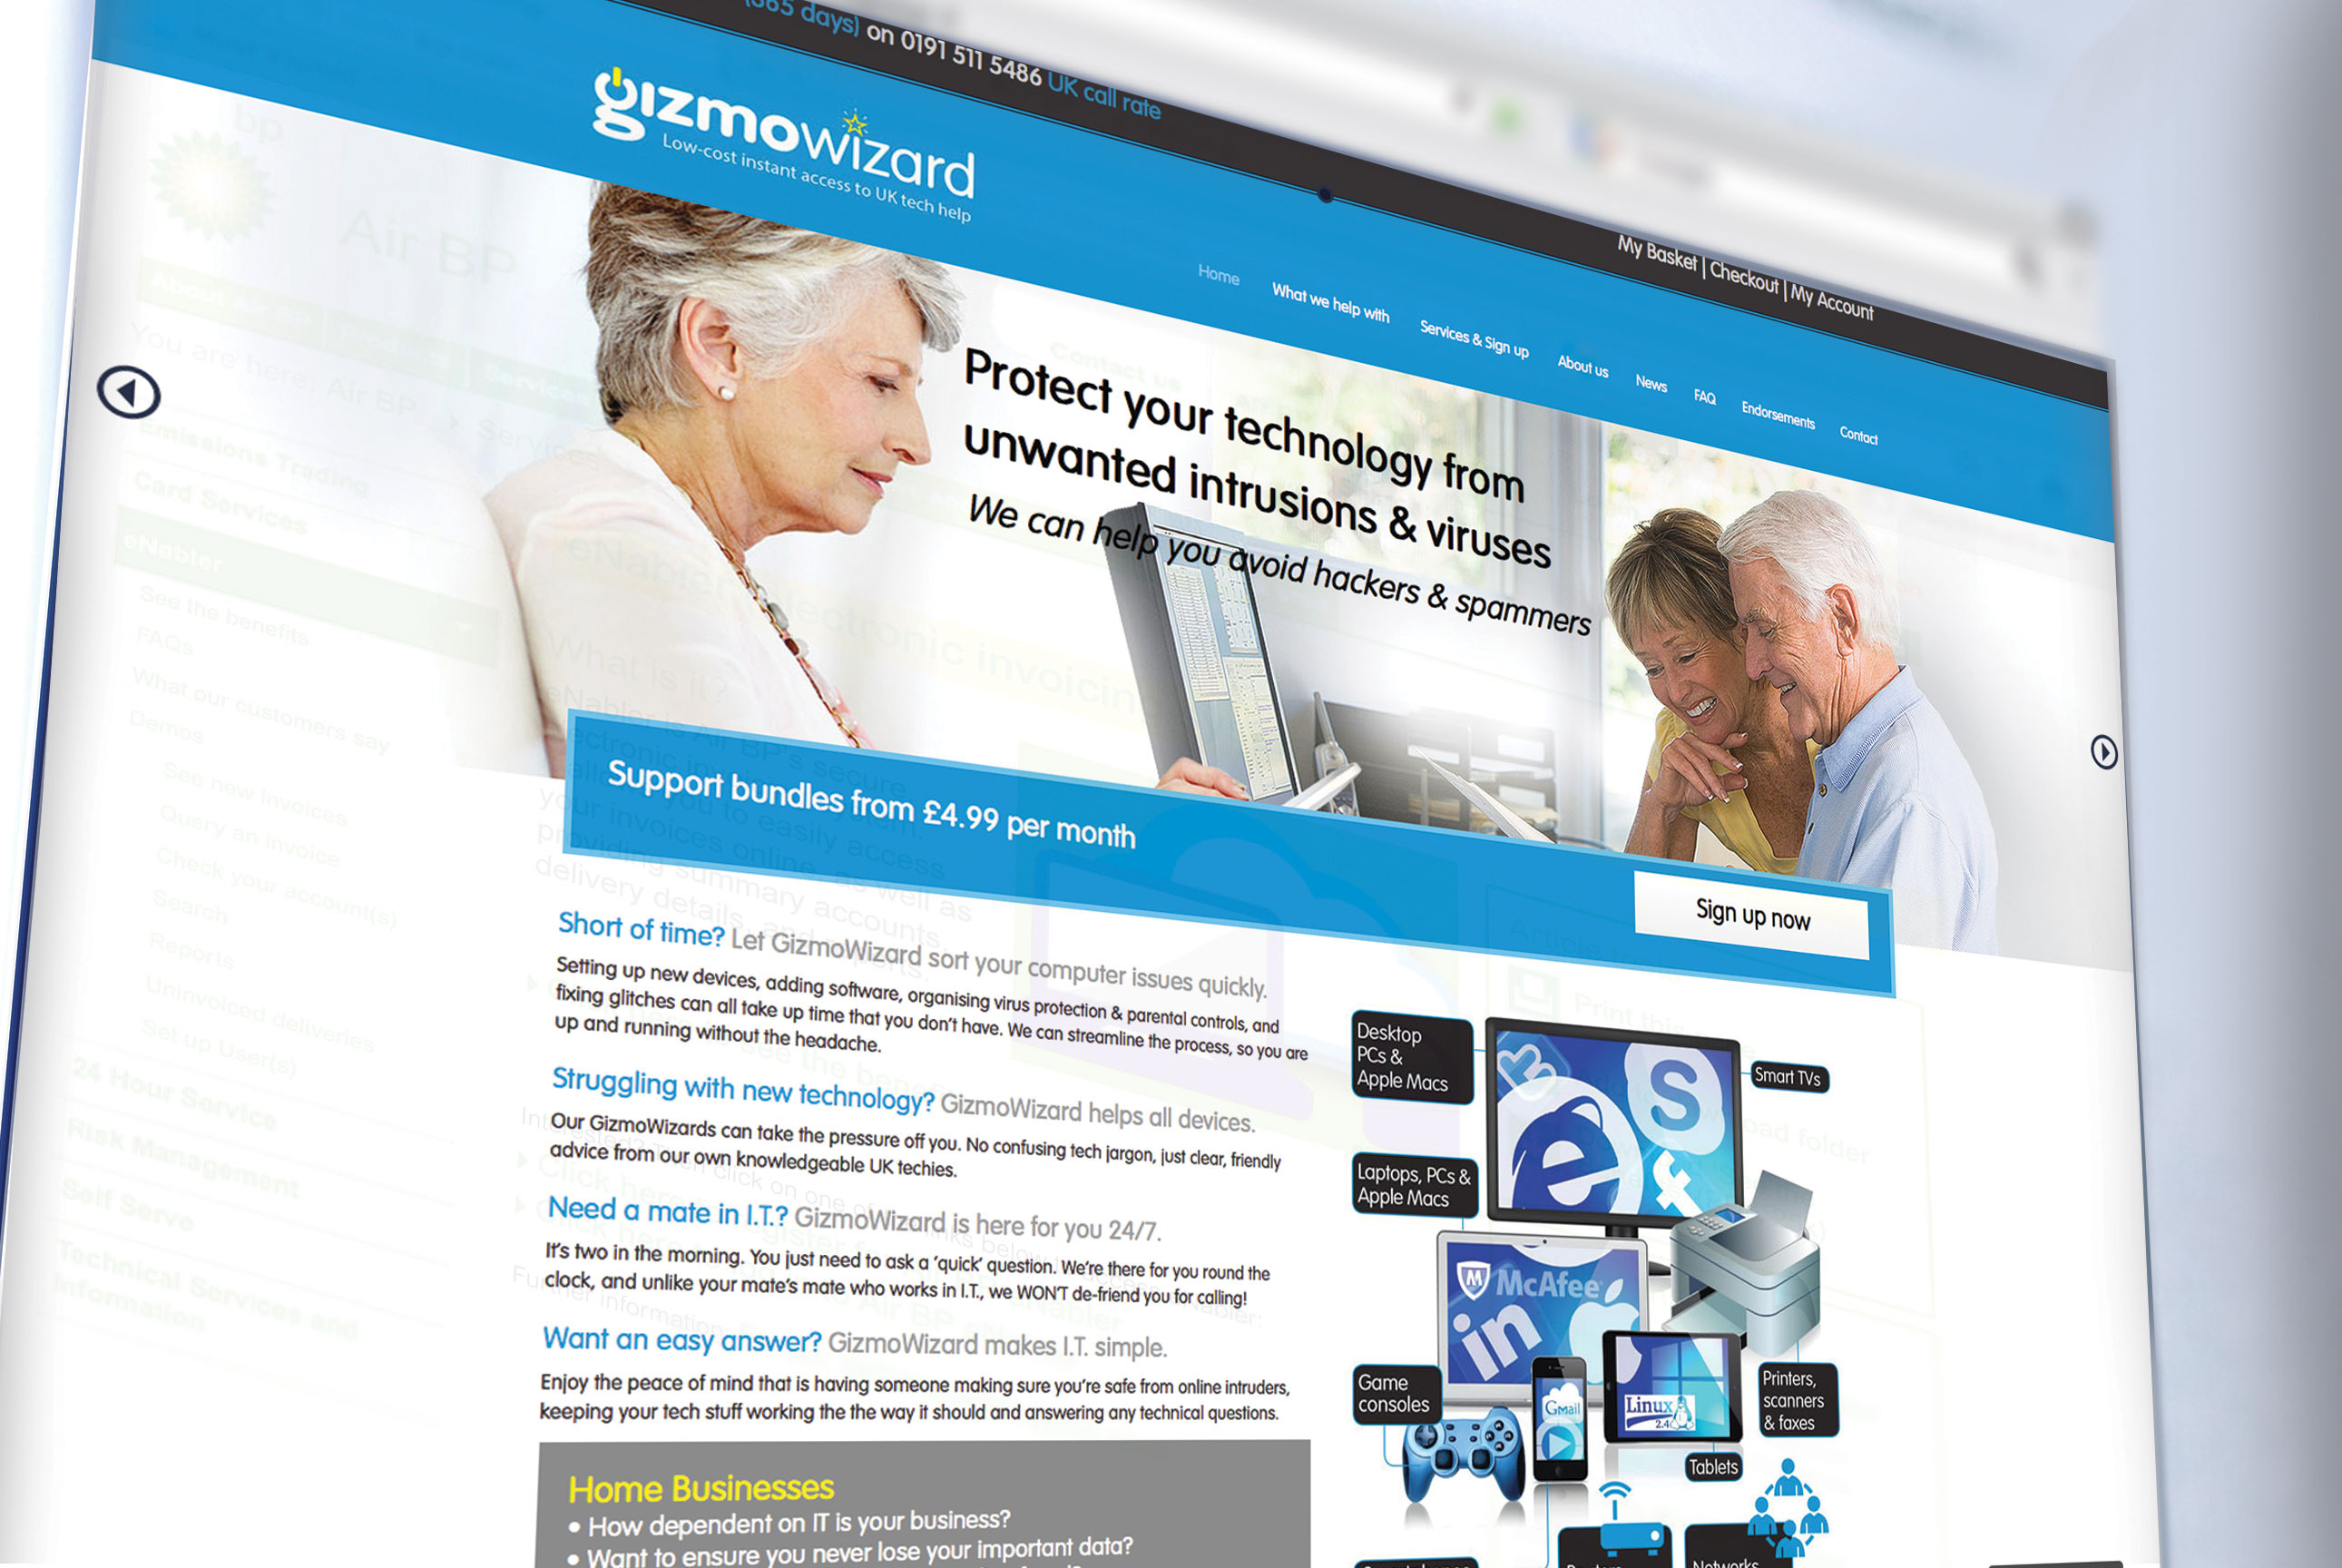 Branding and marketing Gizmowizard